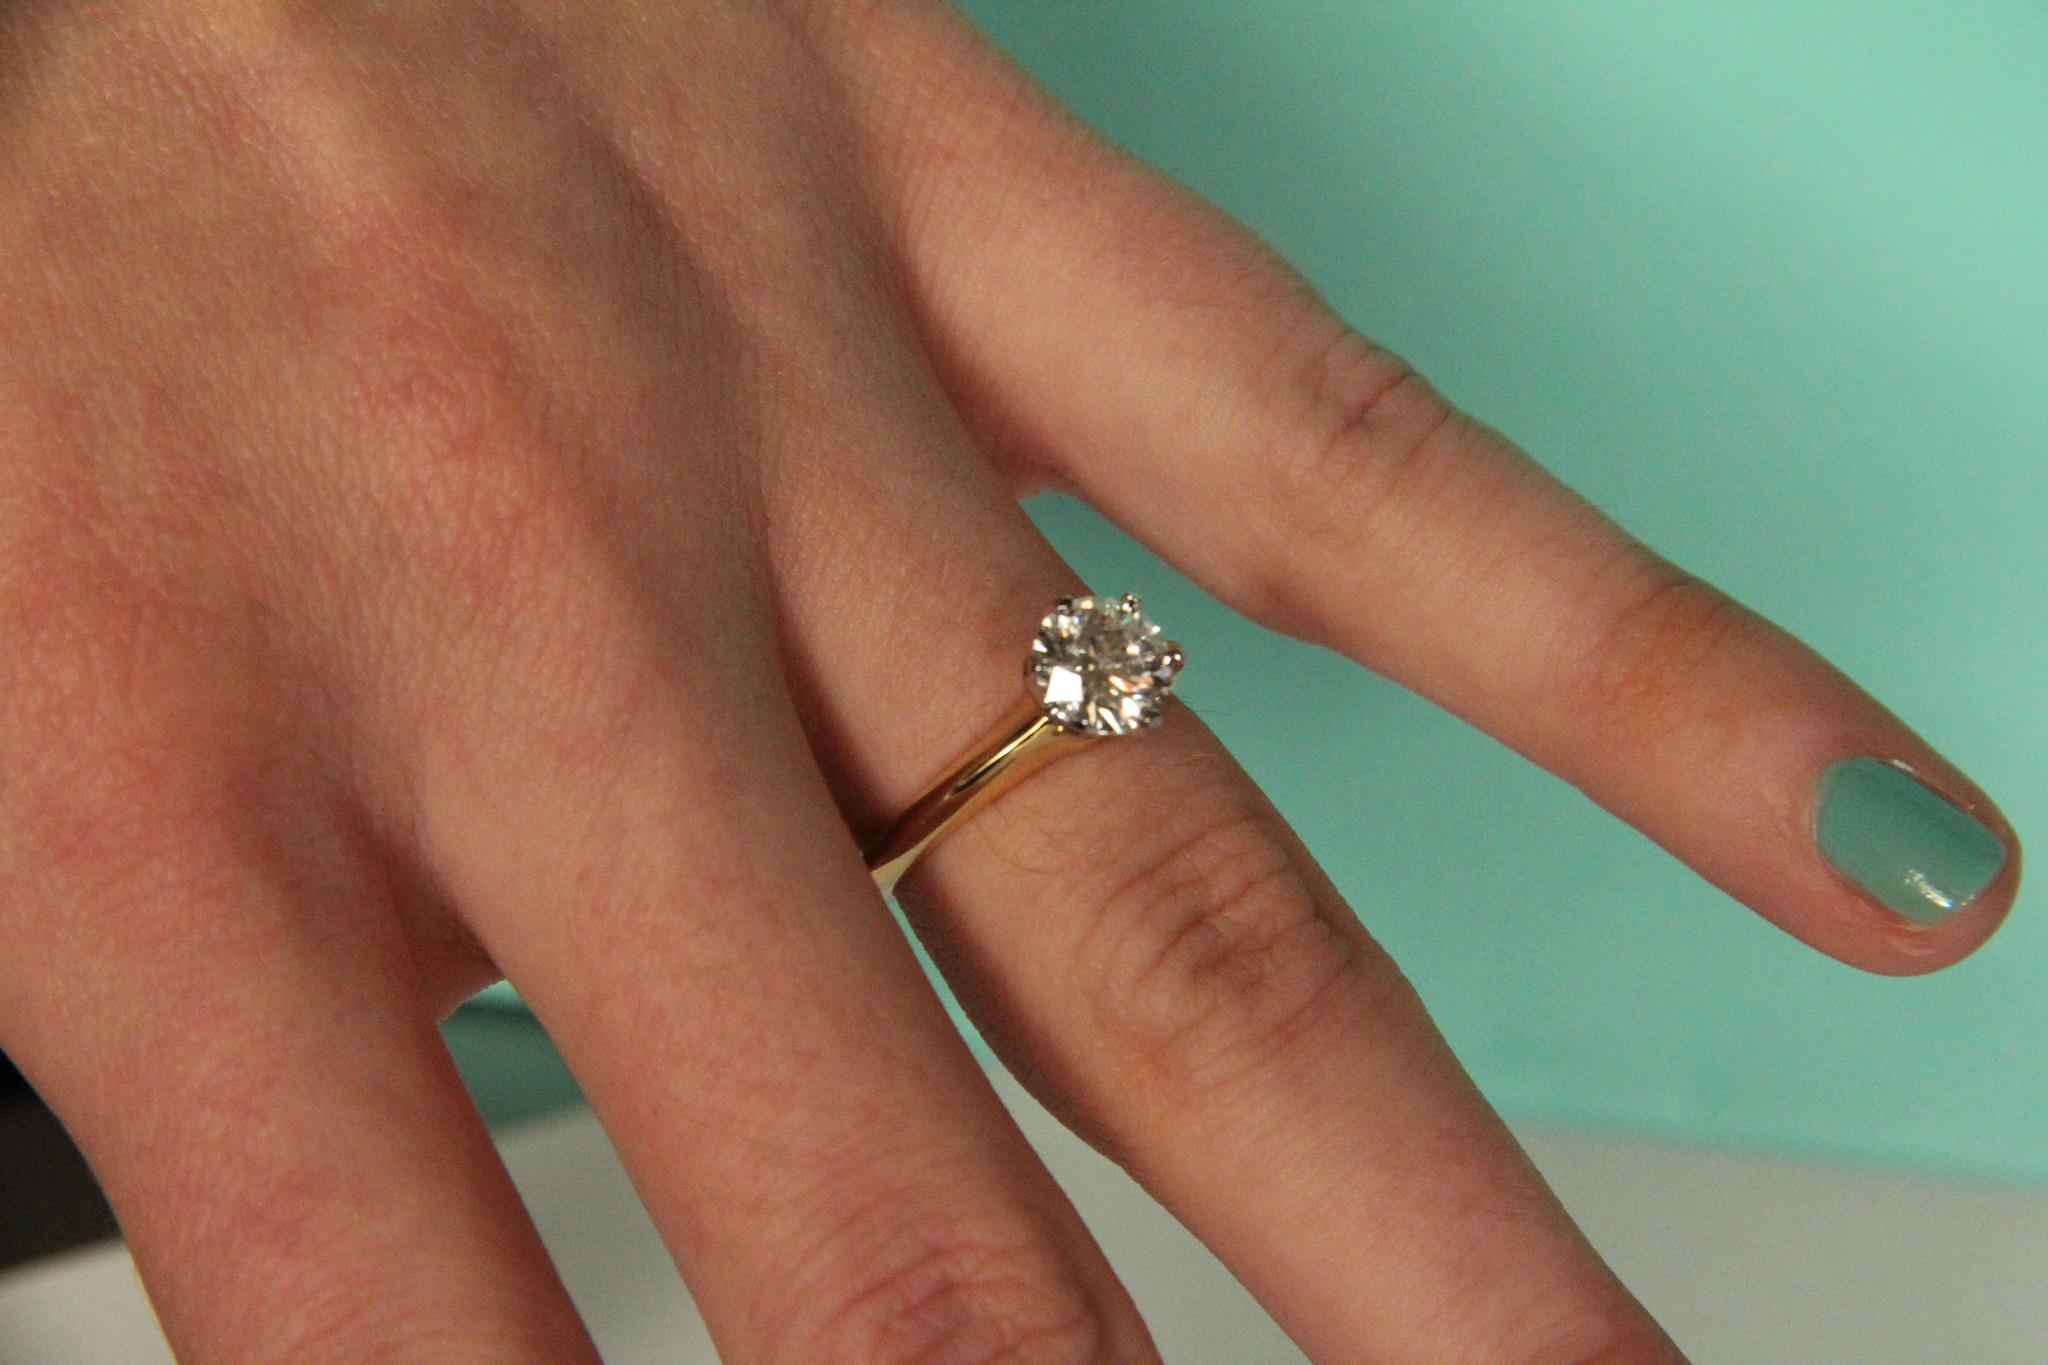 diamond engagement rings on hands